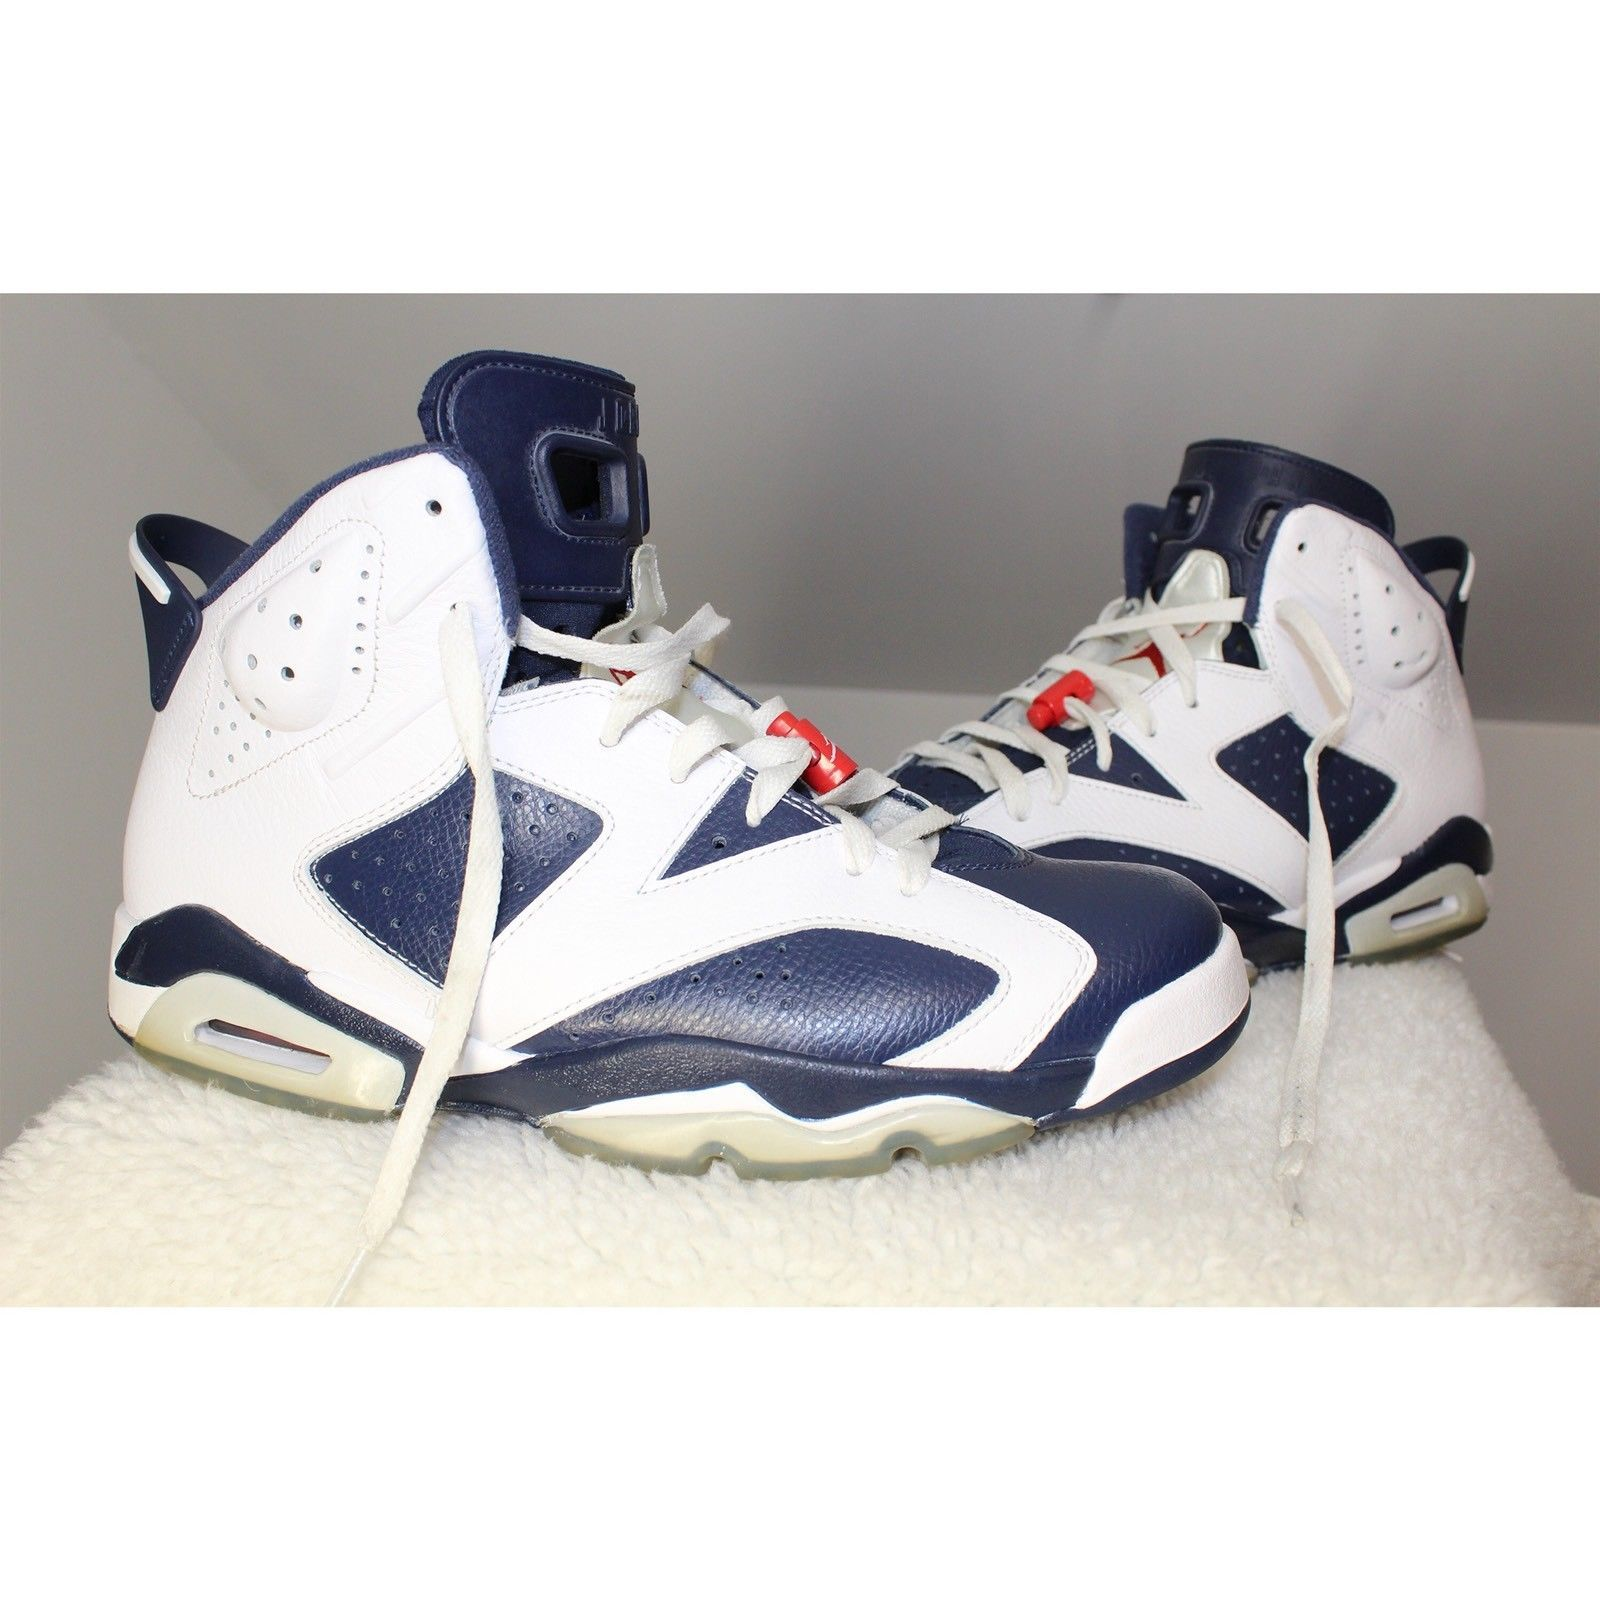 the latest c661b f8087 Nike 2012 Air Jordan 6 VI Retro Size 11 Olympic Navy Red 384664-130